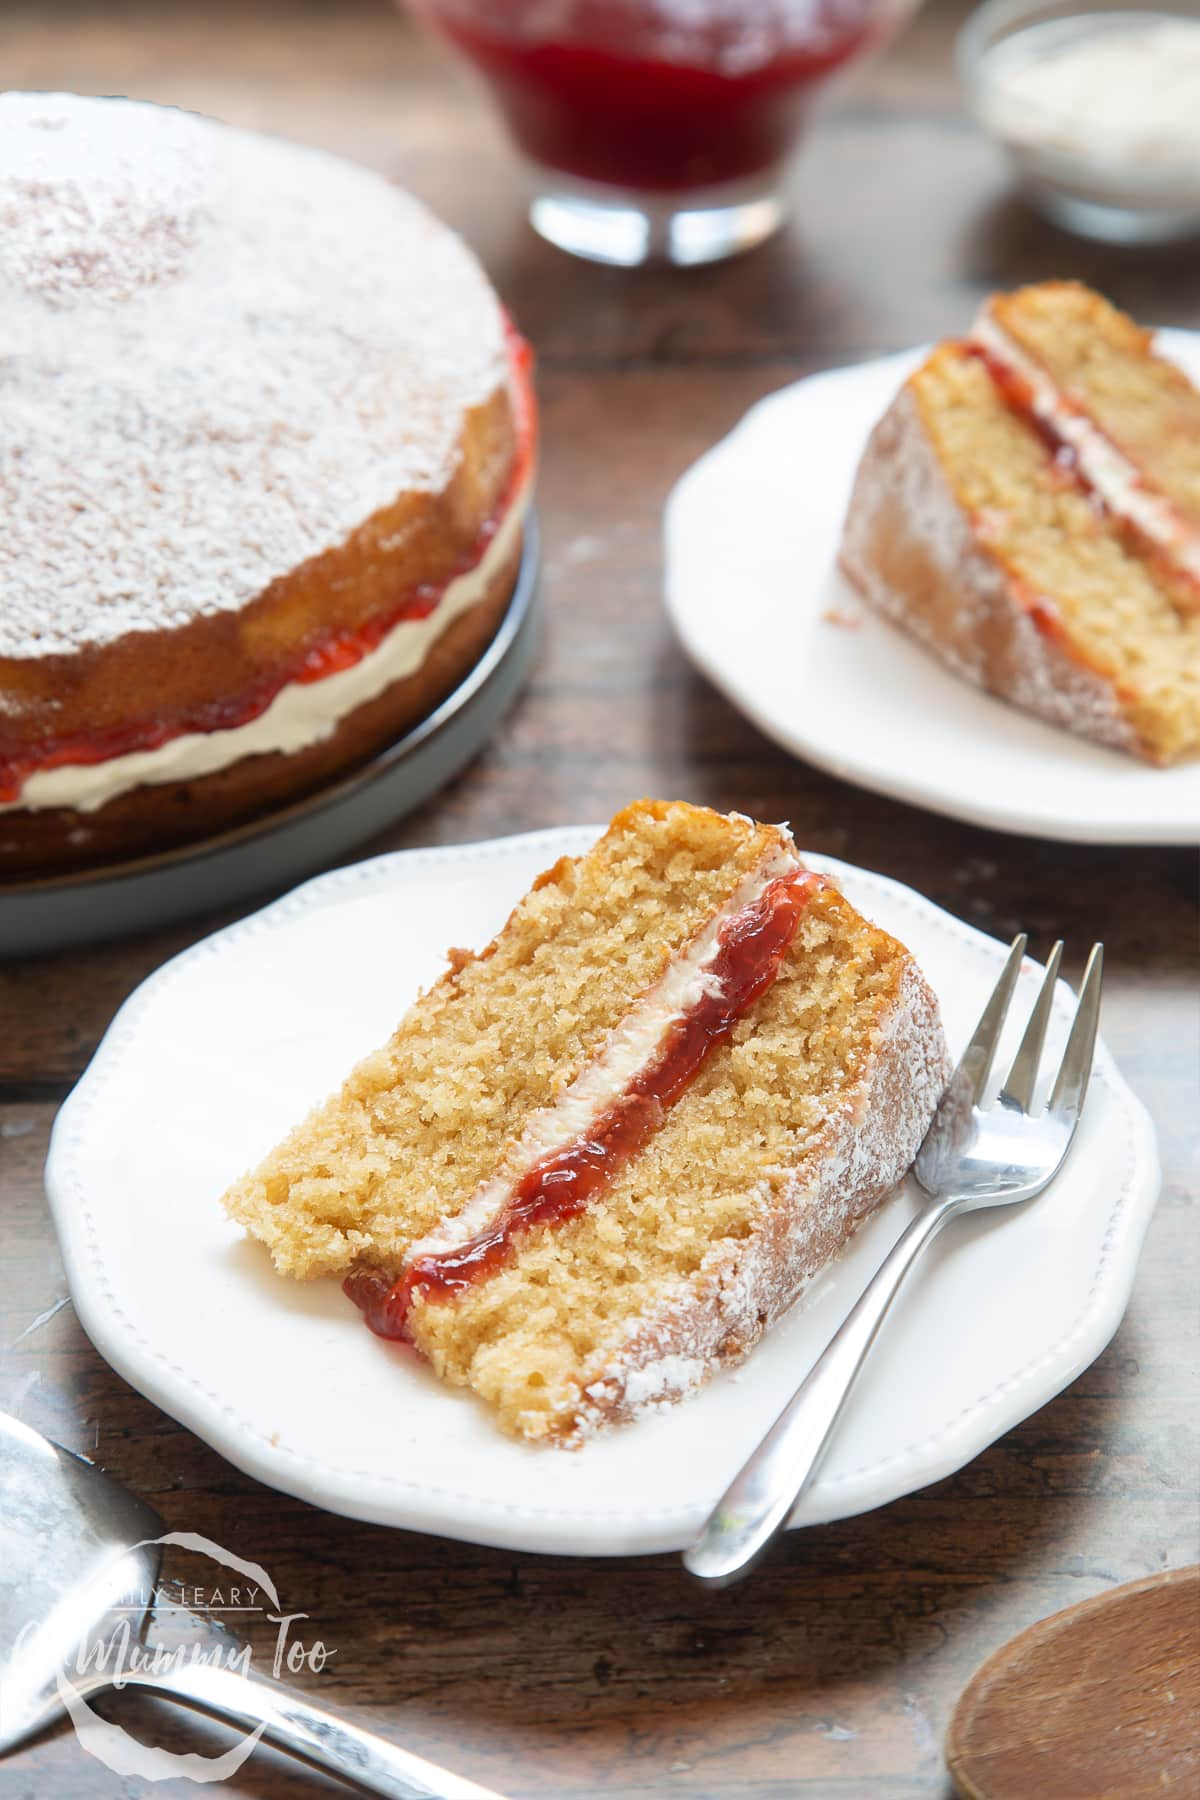 A slice of golden syrup sponge cake on a white decorate plate with a cake fork on the side.